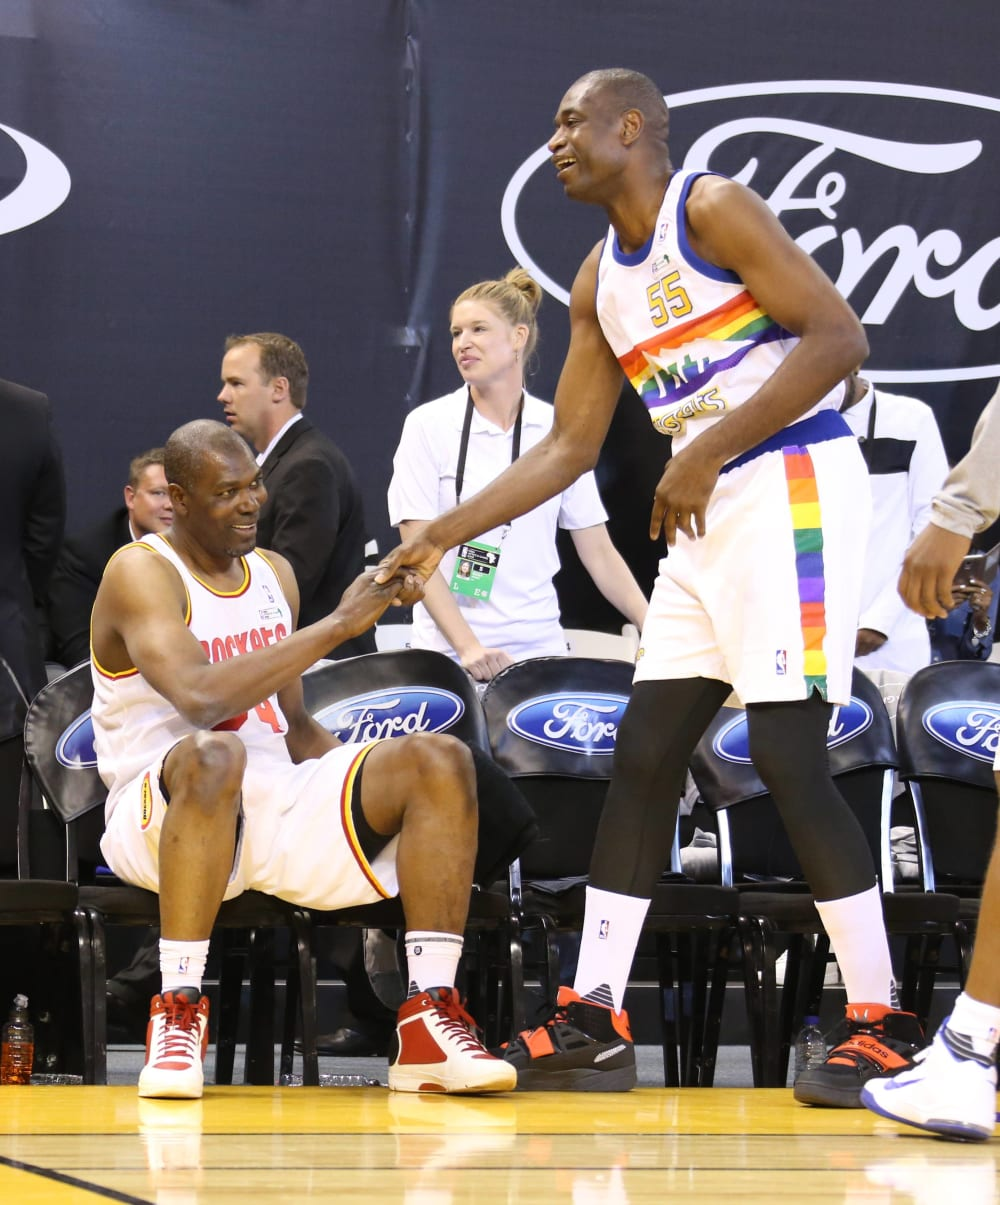 JOHANNESBURG, SA - AUGUST 1: NBA Legends Hakeem Olajuwon and Dikembe Mutombo high-five as they guest play for Team Africa during the NBA Africa Game 2015 as part of Basketball Without Borders on August 1, 2015 at the Ellis Park Arena in Johannesburg, South Africa. NOTE TO USER: User expressly acknowledges and agrees that, by downloading and or using this photograph, User is consenting to the terms and conditions of the Getty Images License Agreement. Mandatory Copyright Notice: Copyright 2015 NBAE (Photo by Nathaniel S. Butler/NBAE via Getty Images)